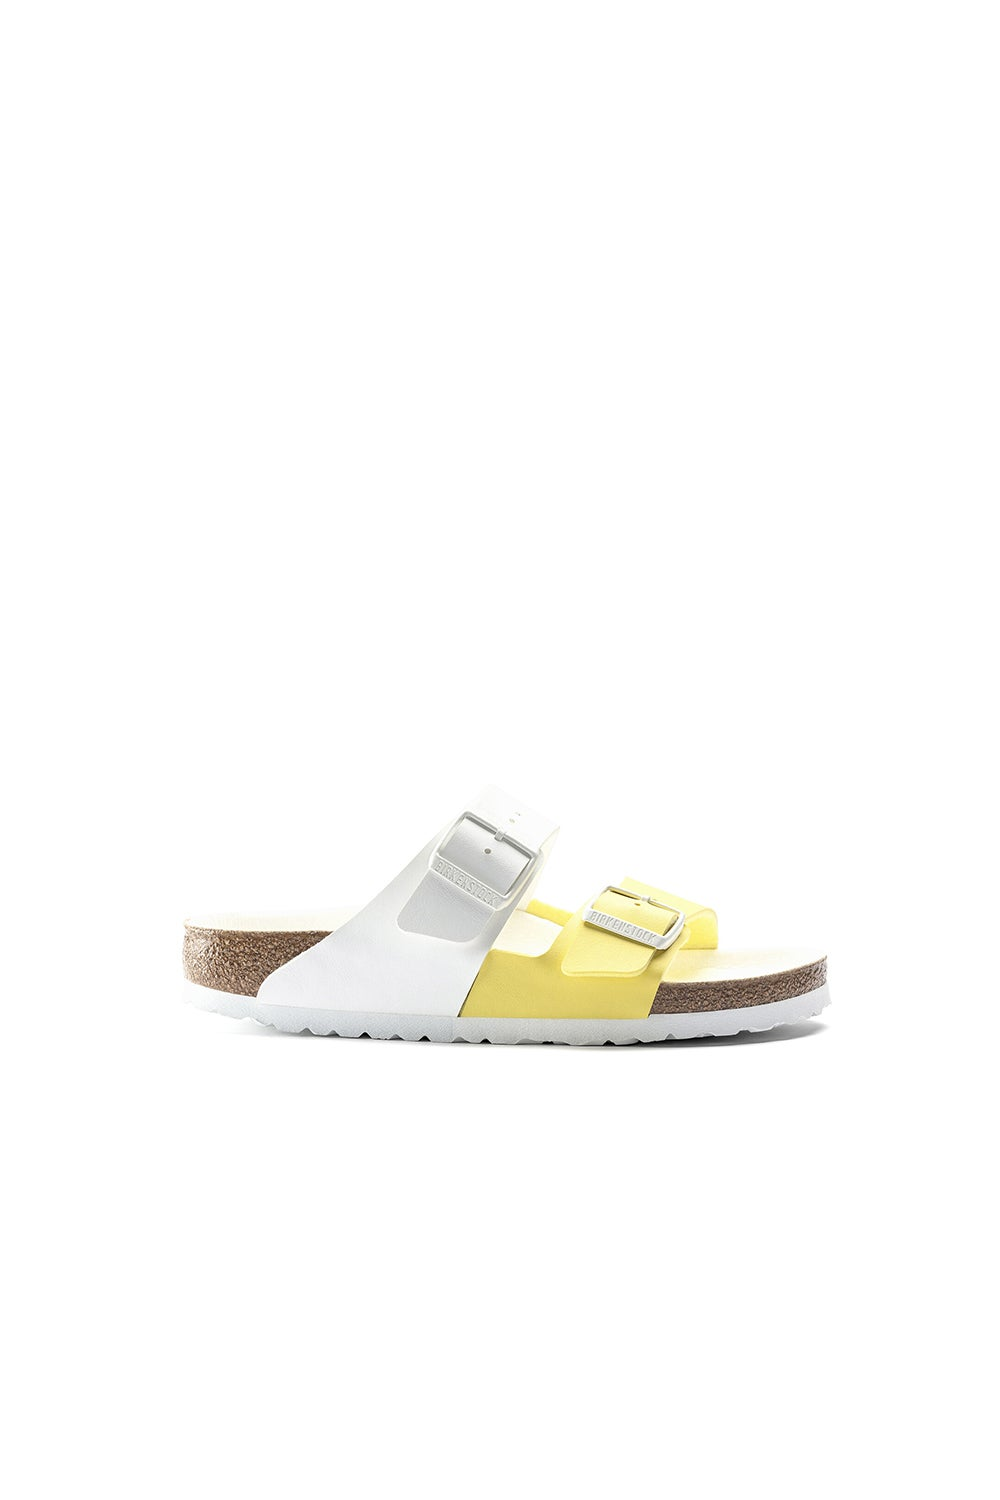 Birkenstock Arizona Birko-Flor Split White/Lime Sour